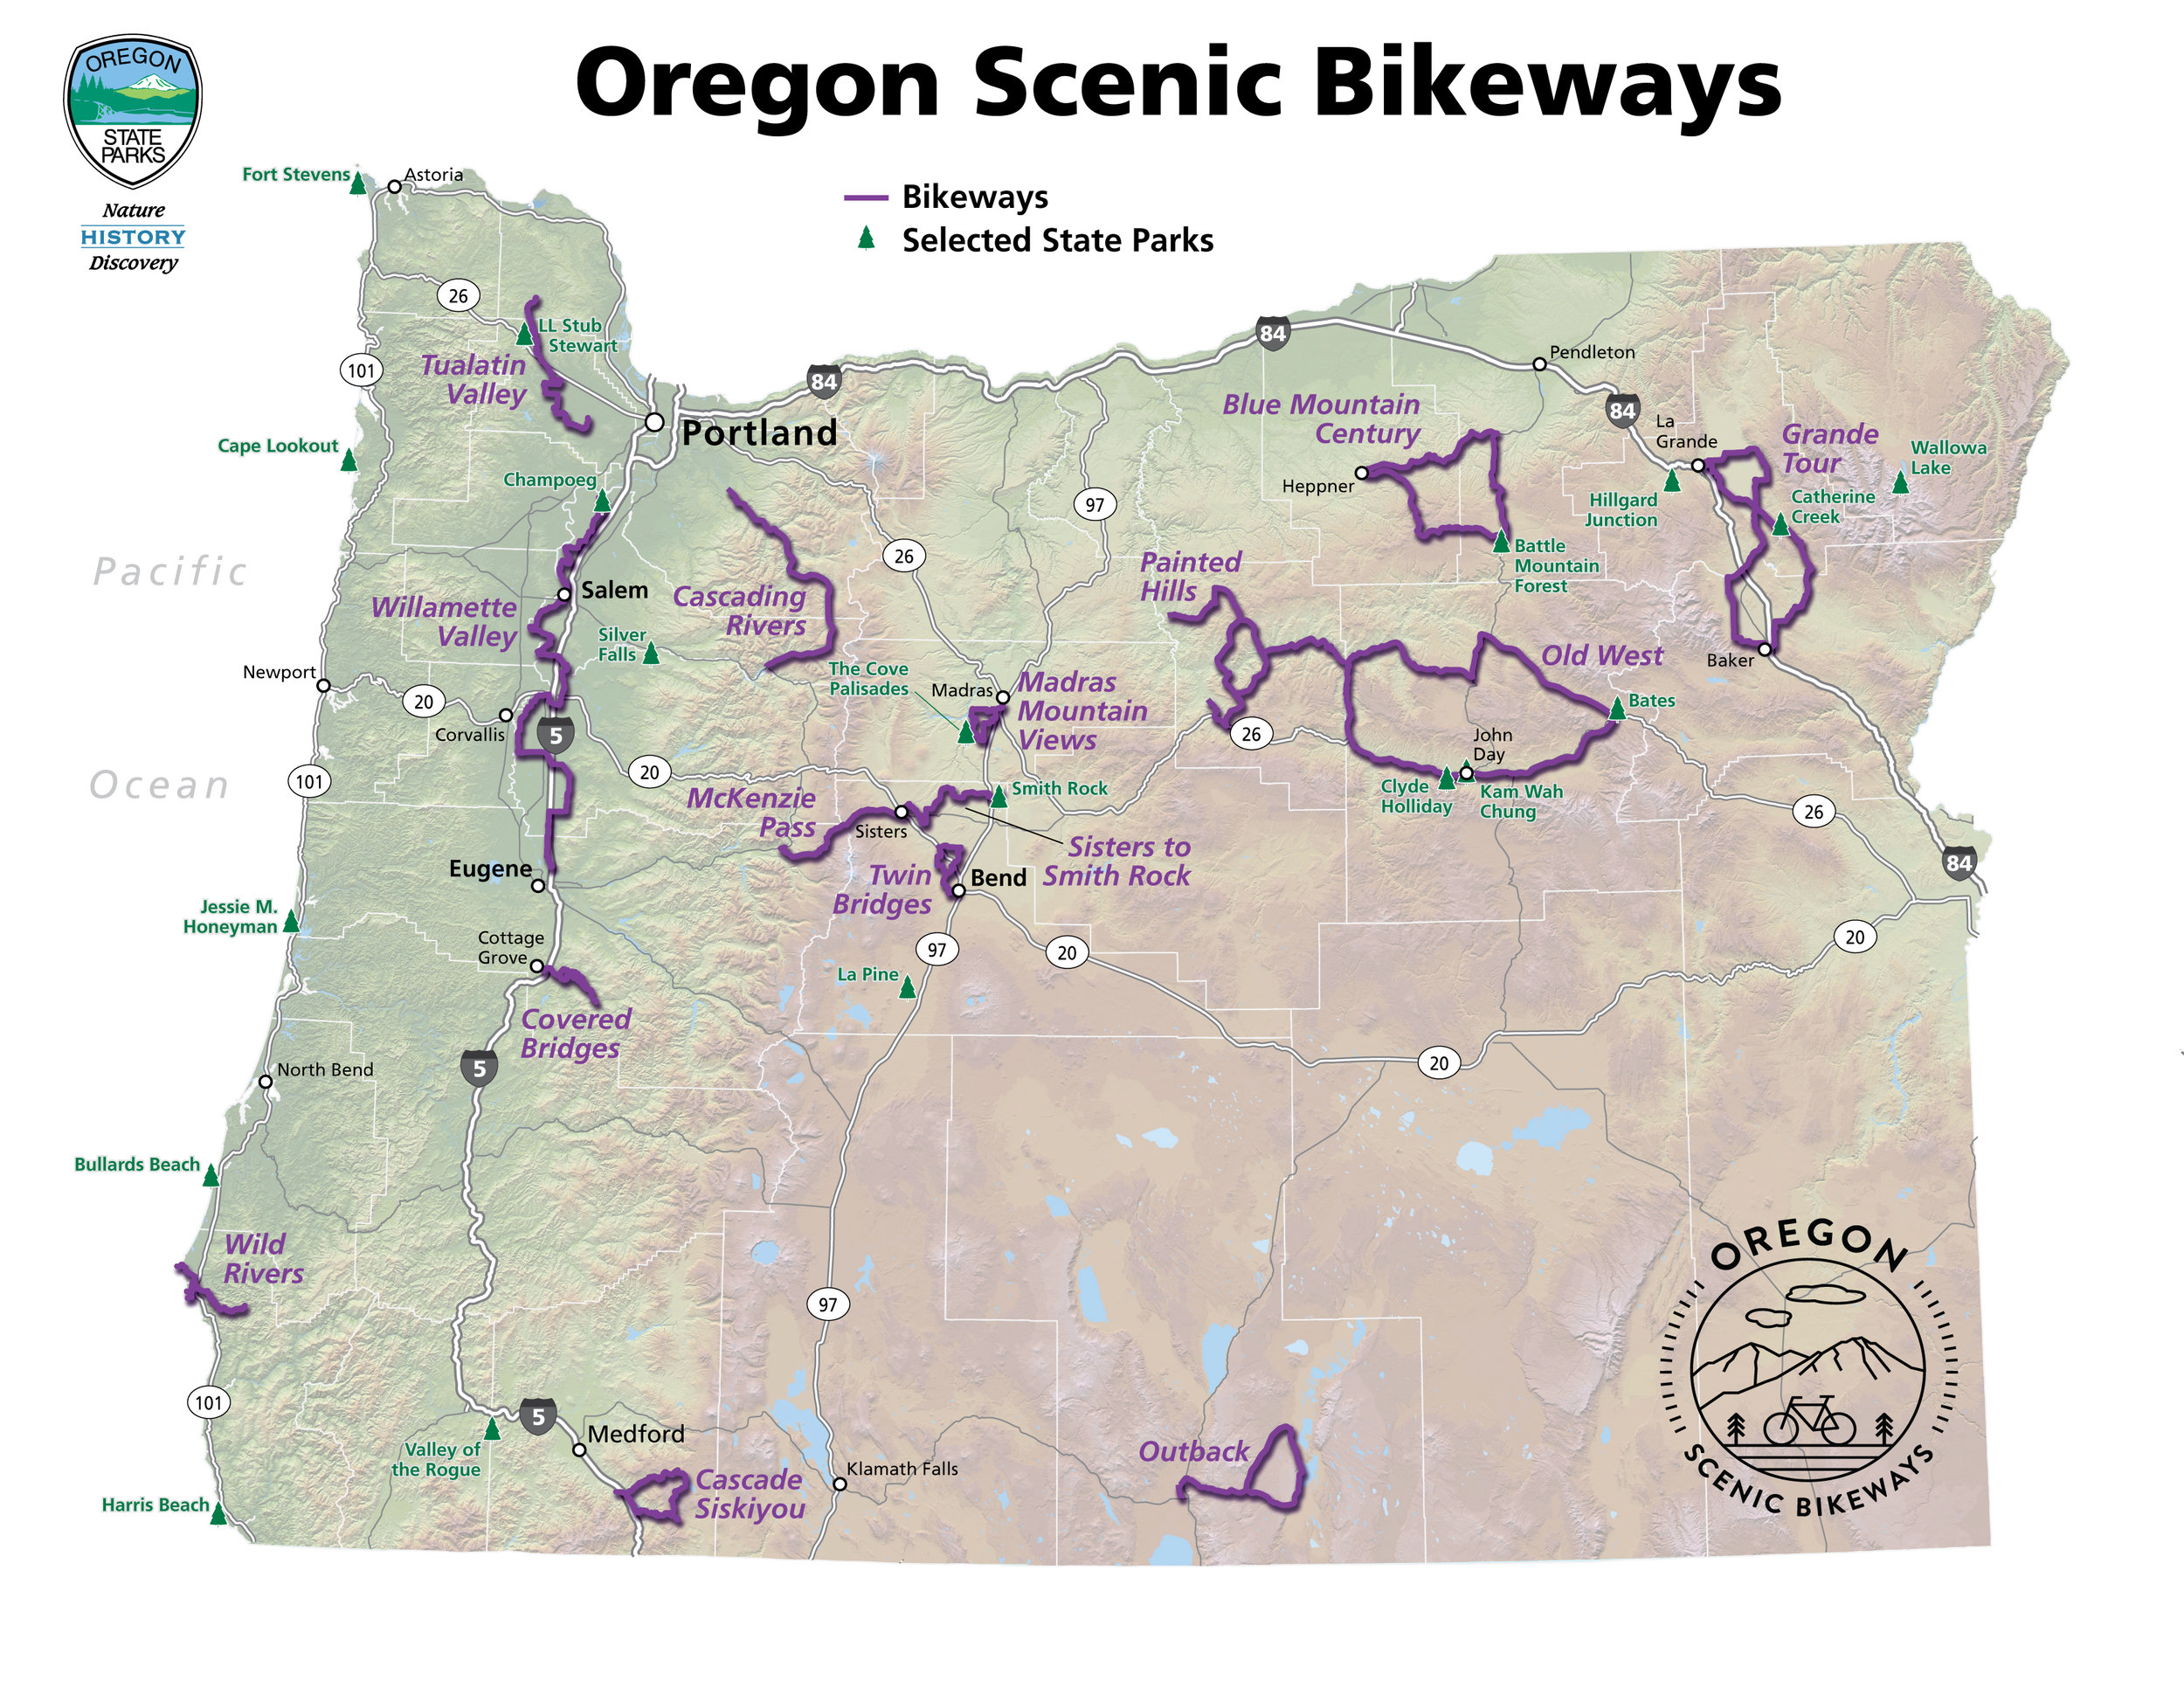 Scenic Bikeway Map. Oregon's State designated Scenic Bikeways are carefully picked from locally proposed routes to highlight the best of the best road cycling in Oregon. Each bikeway is categorized by being mild, moderate, challenging and extreme. Currently, there are 15 designated Scenic Bikeways across the state. Map courtesy of Oregon Parks and Recreation Department.